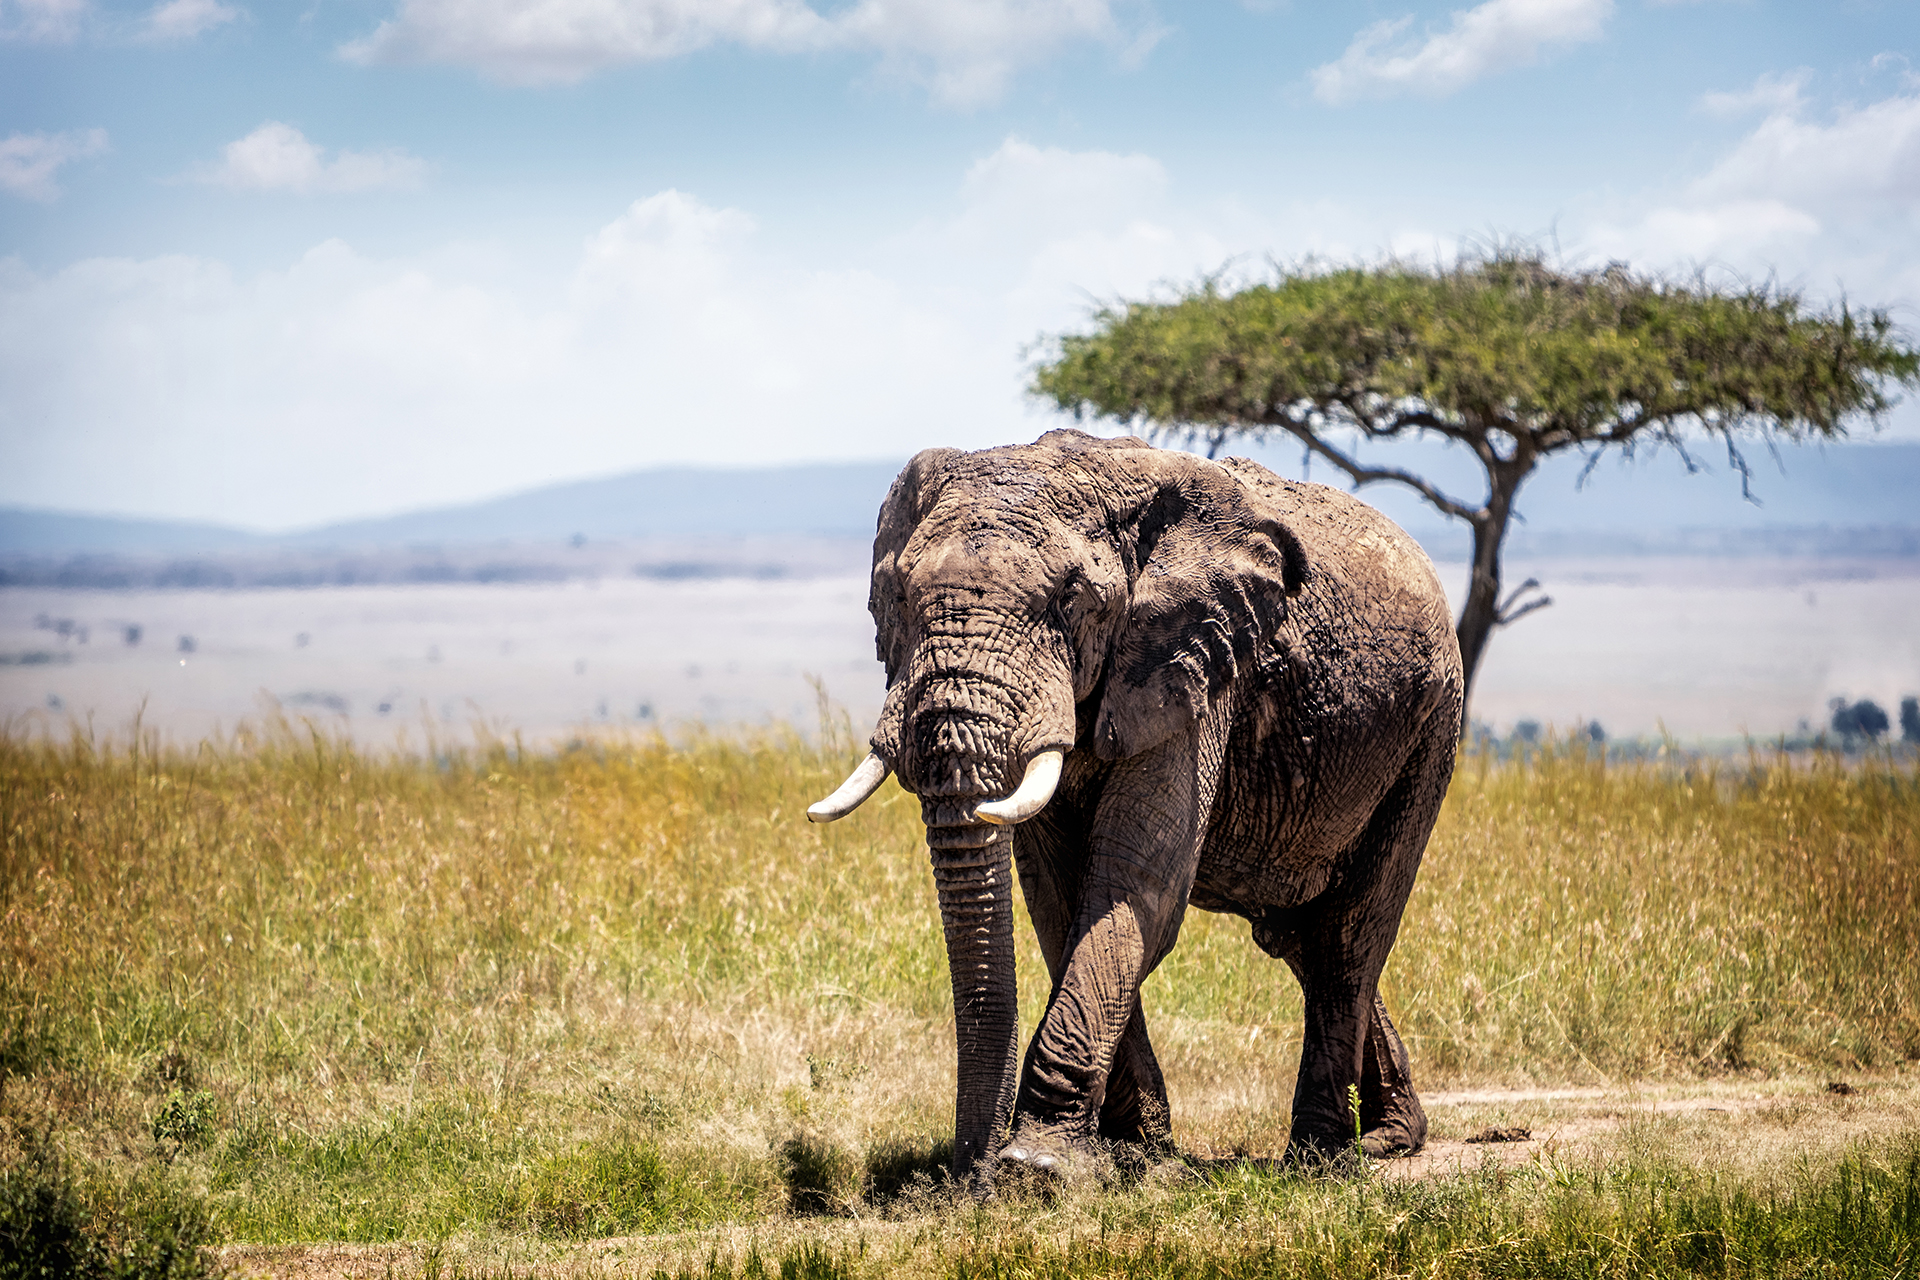 Large Bull Elephant Walking Forward in Kenya.jpg